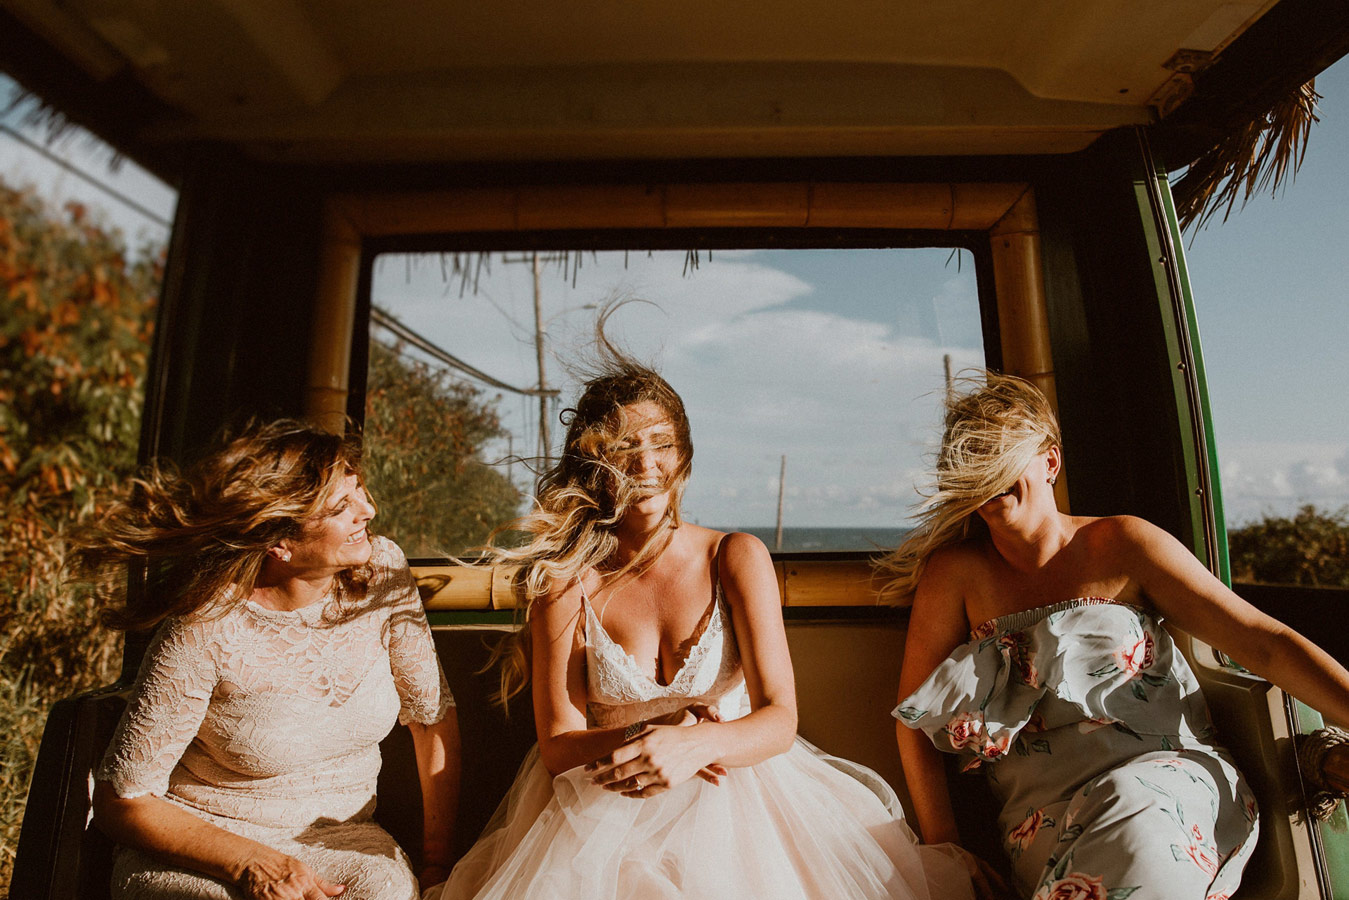 The Wild Ride, © Gina Mcnulty (Gina & Ryan Photography), Burbank, Rangefinder Wedding Contest